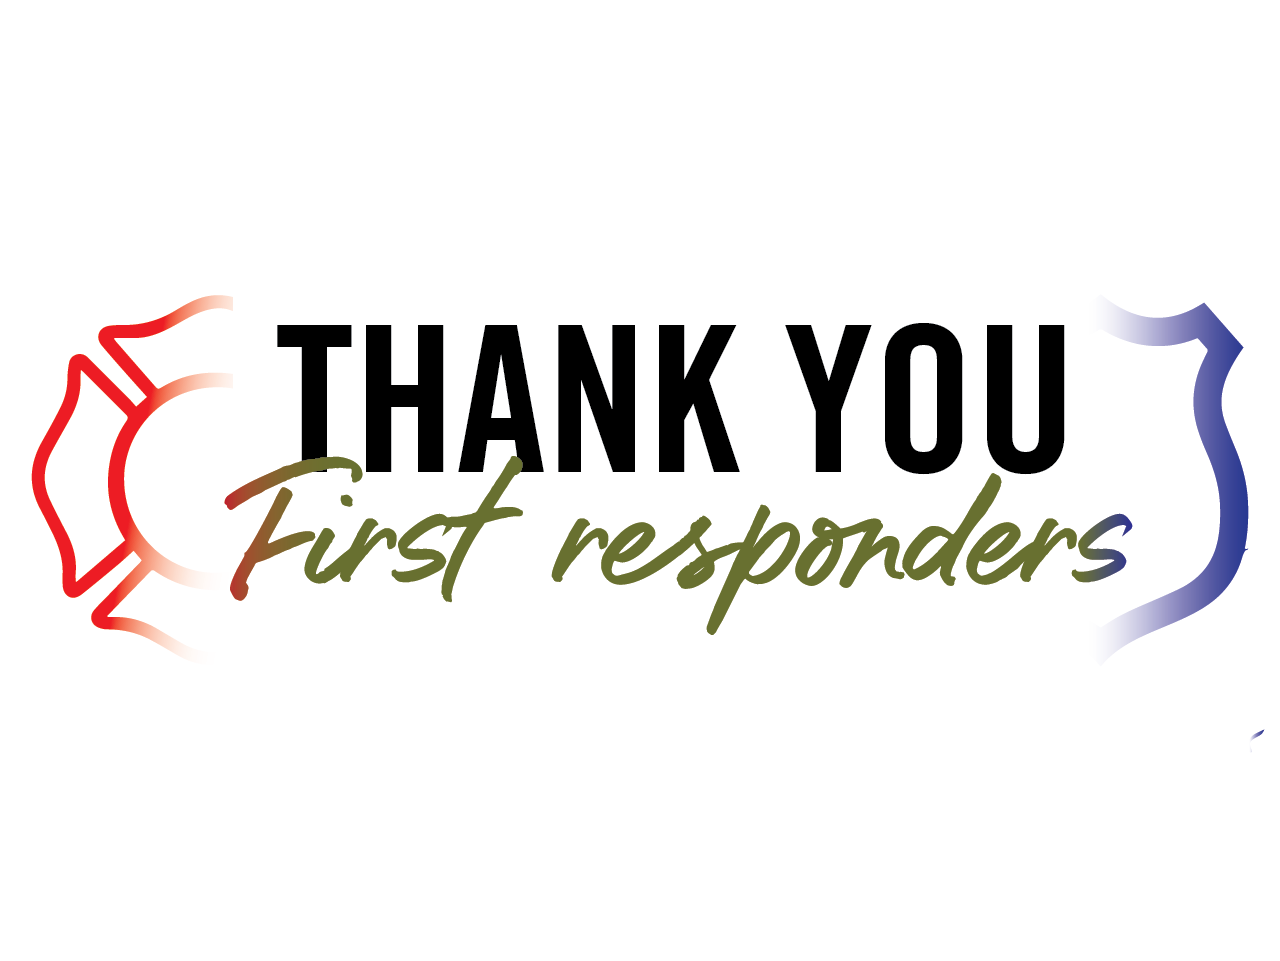 Thank You First responders graphic